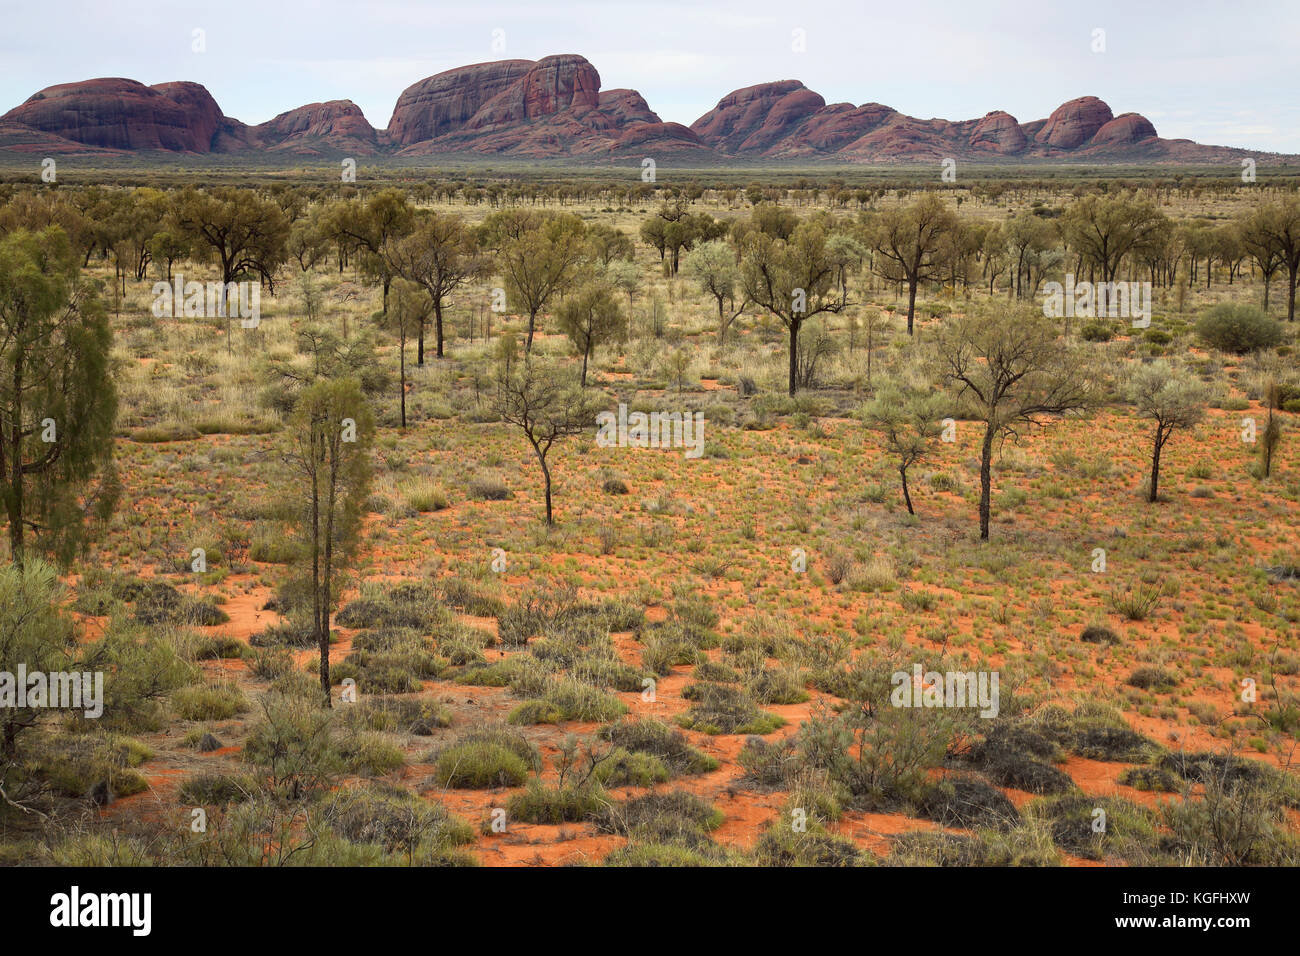 dunes in the australian outback near the olgas in the northern territory australia - Stock Image